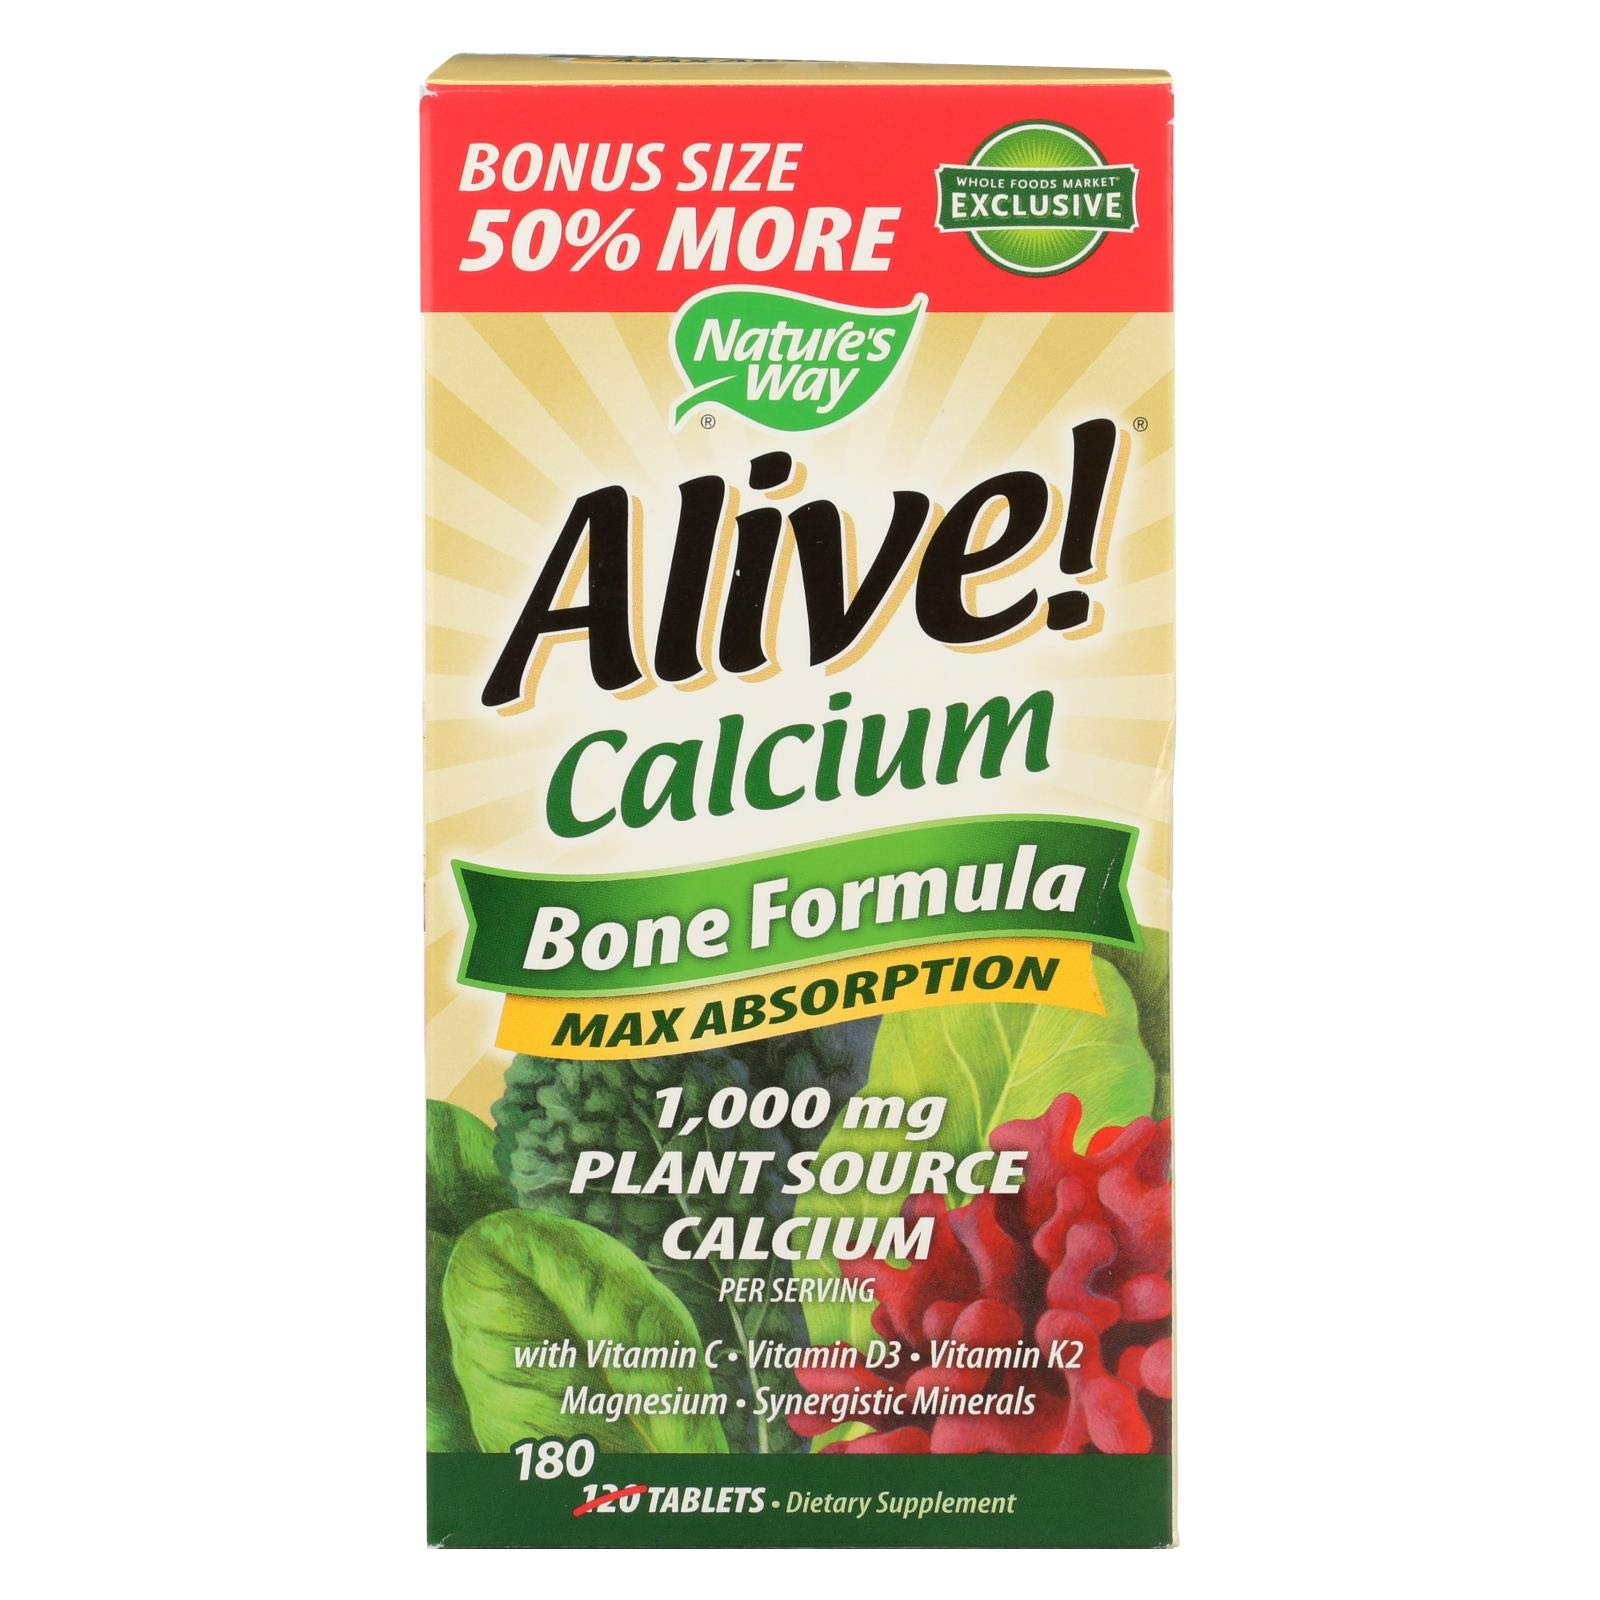 Natures Way Alive! Calcium Bonus Pack, 180 CT